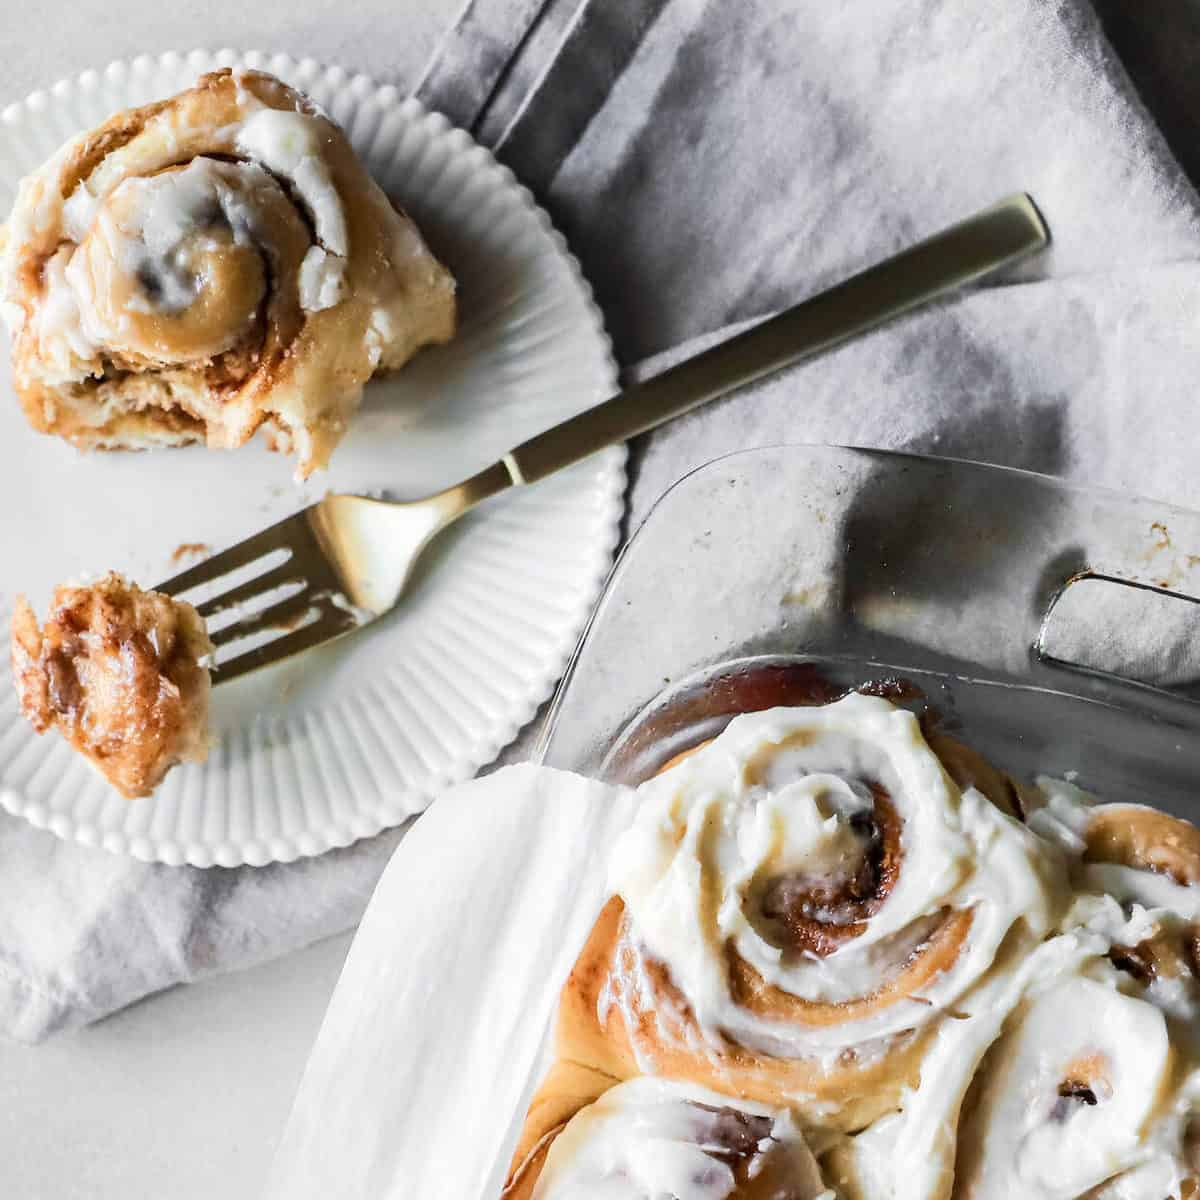 Warm cinnamon rolls with icing in a glass pan